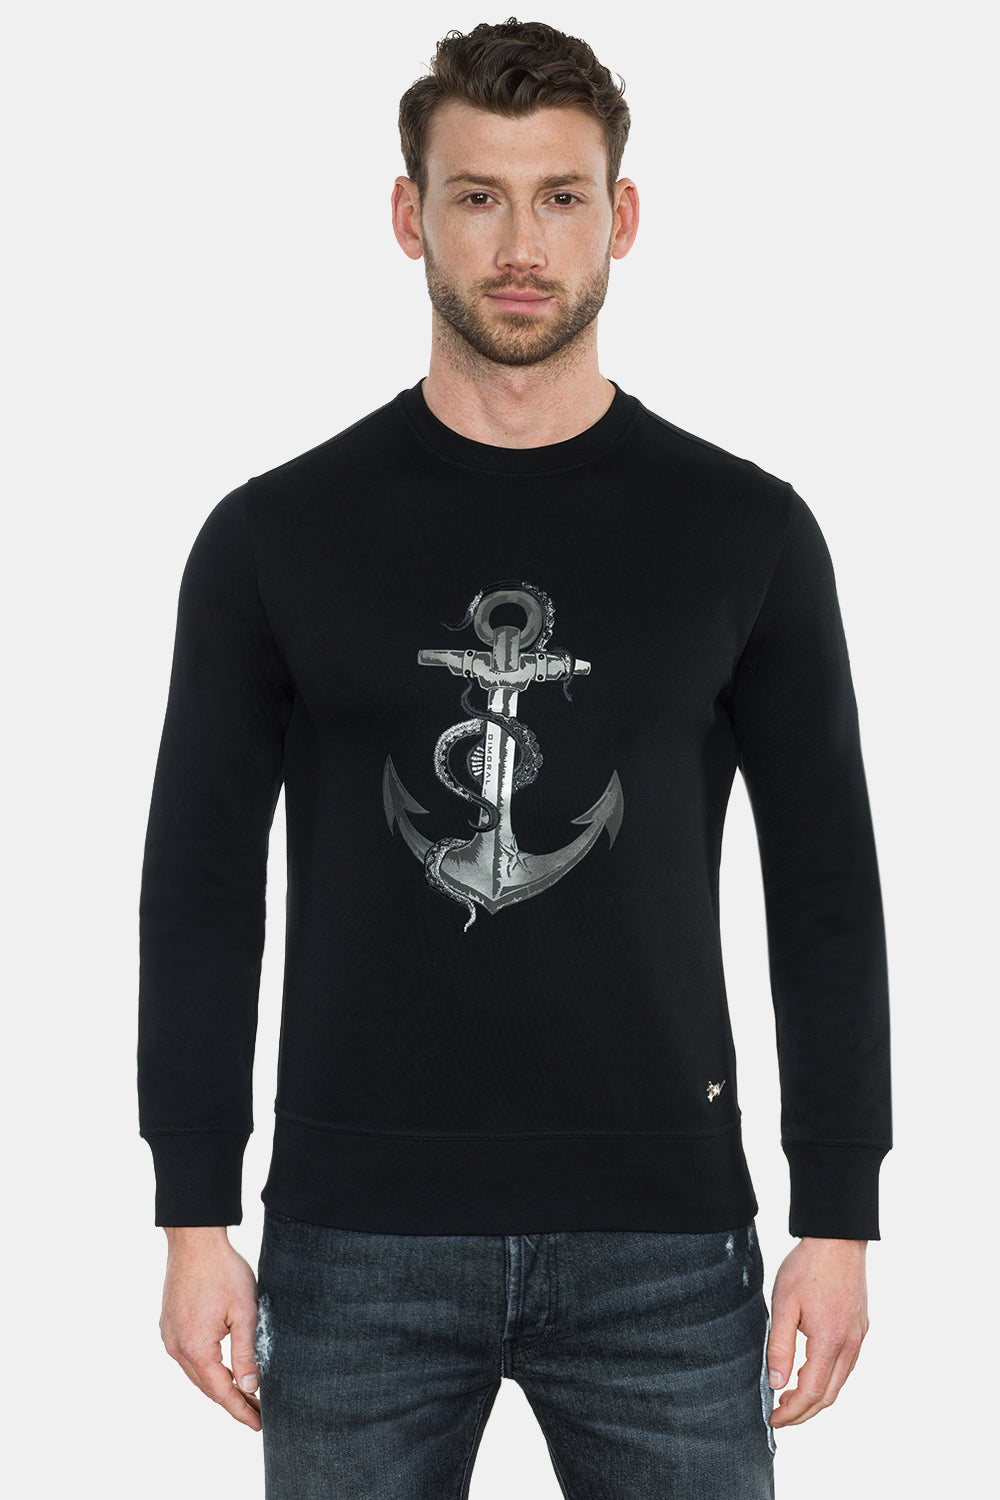 ANCHOR PRINT EMBROIDERY SWEATSHIRT - DIMORAL OFFICIAL